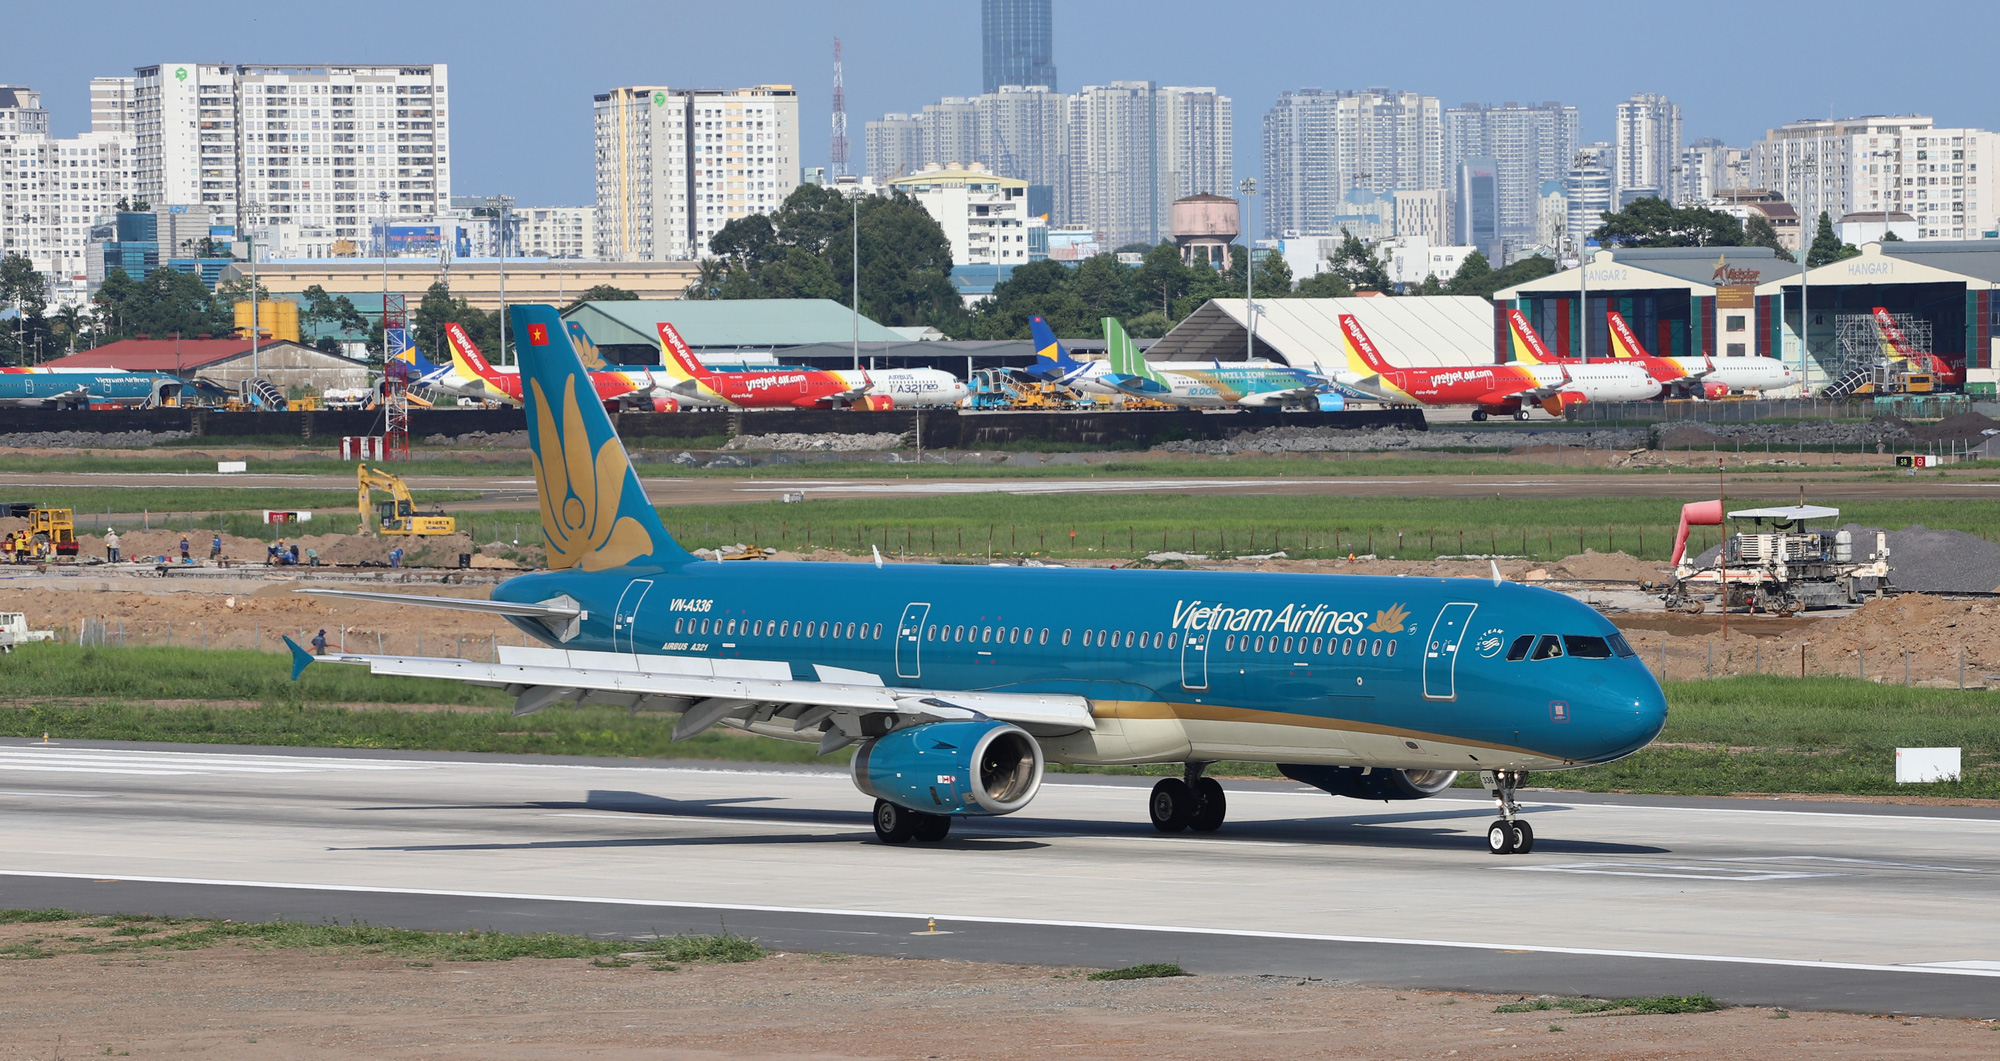 Vietnam Airlines permitted to operate flights to Canada